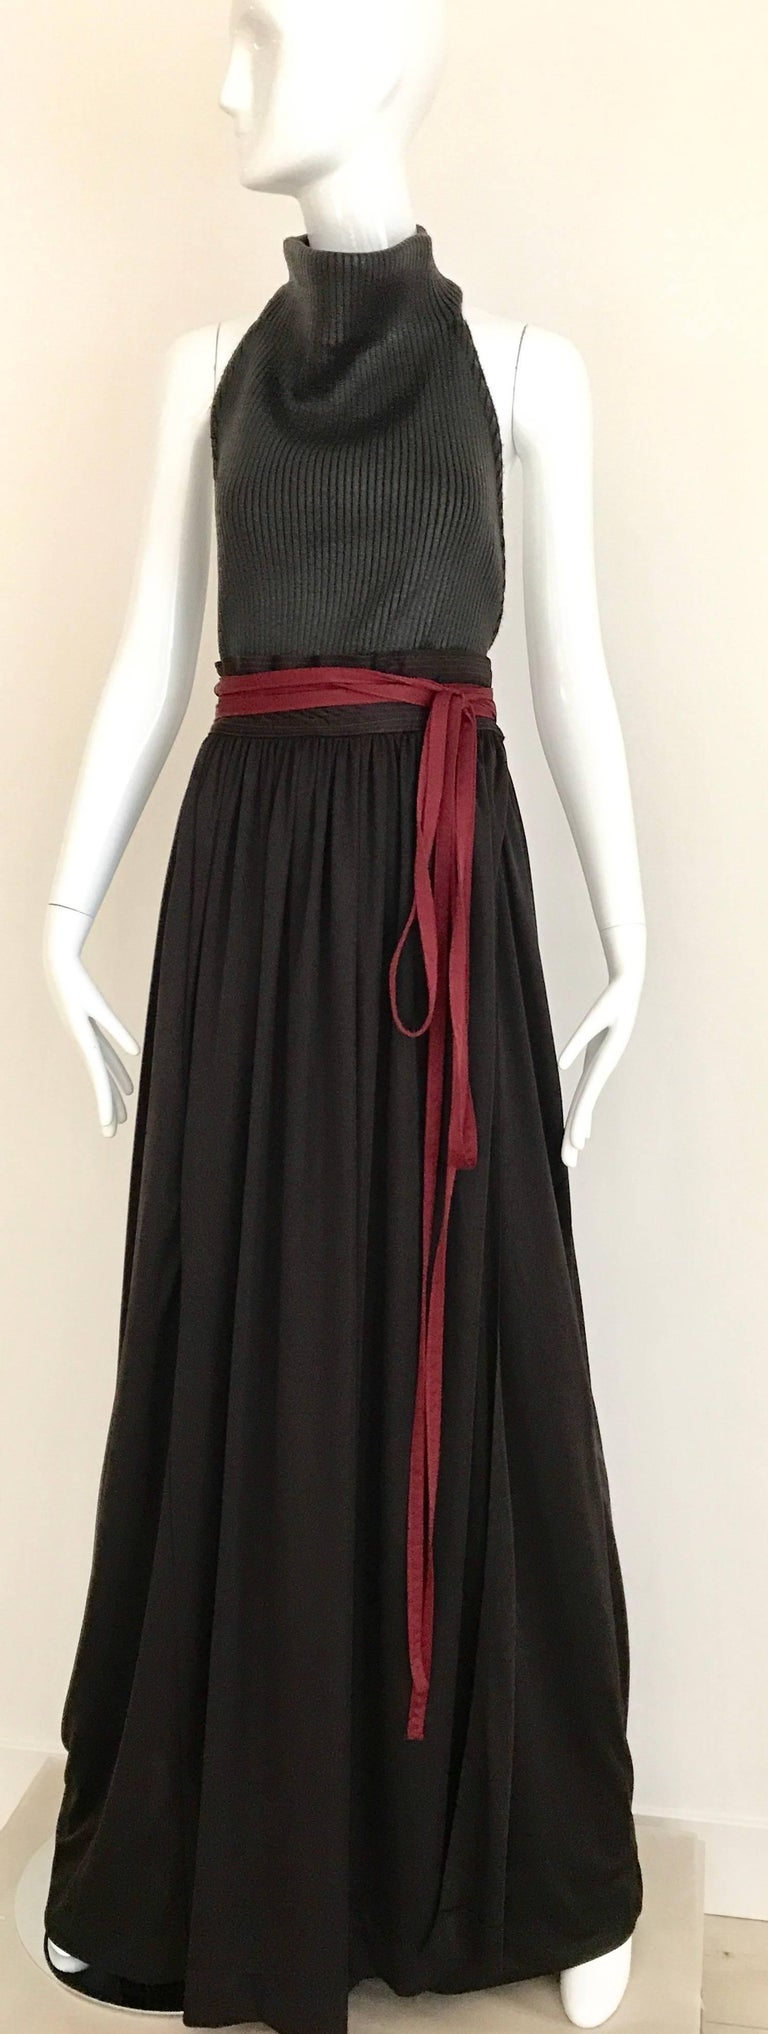 Women's 1970s Geoffrey Beene Brown and Red Knit Maxi Dress For Sale